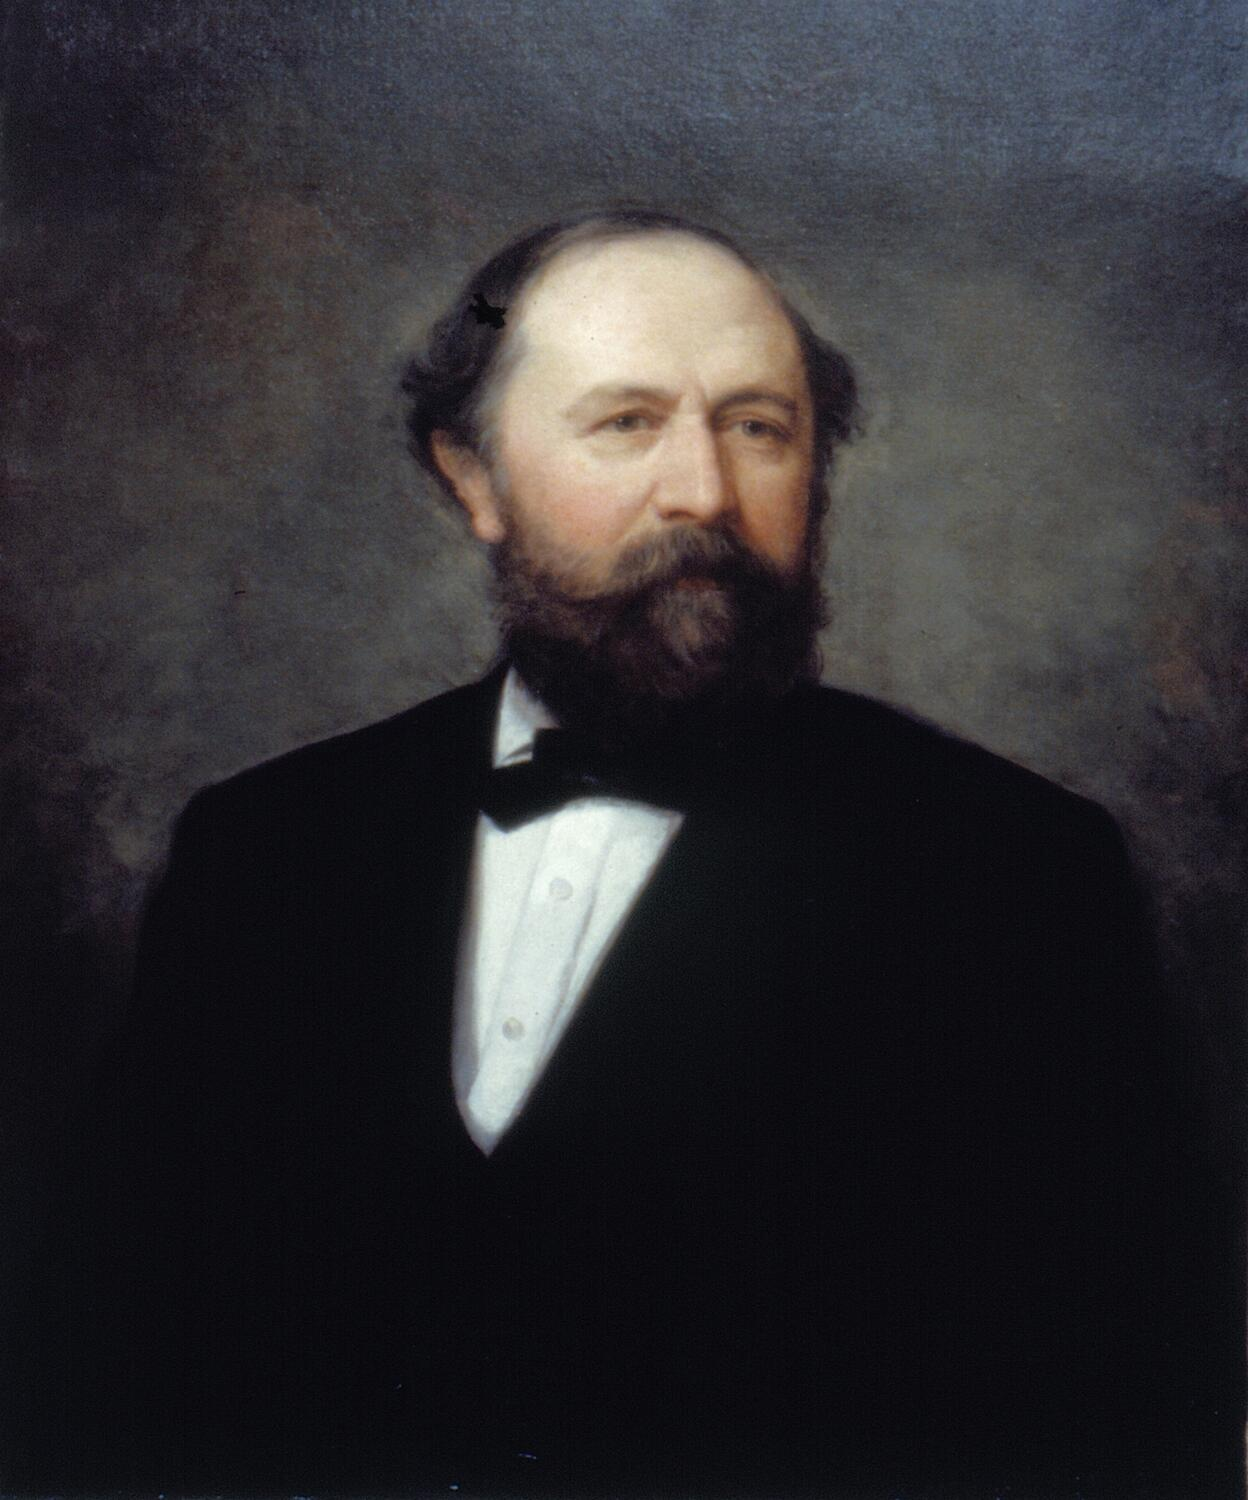 Henry A. Smythe, collector of customs for the Port of New York 1866-1869Herman Melville met Henry Smythe in Switzerland, which proved to be the means by which Melville finally managed to acquire a federal job in the New York Custom House. Smythe was appointed collector of customs for the collection district of New York on May 10, 1866. In lieu of obtaining the usual political endorsements, Melville applied for a job directly to Smythe, and he was rewarded with an appointment as a customs inspector in the surveyor's office on Dec. 5, 1866. Accused of corruption, Smythe barely managed to hold on to his collectorship and was forced out of office after four years, whereas Melville toiled on the piers for 19 years until his retirement in 1885.